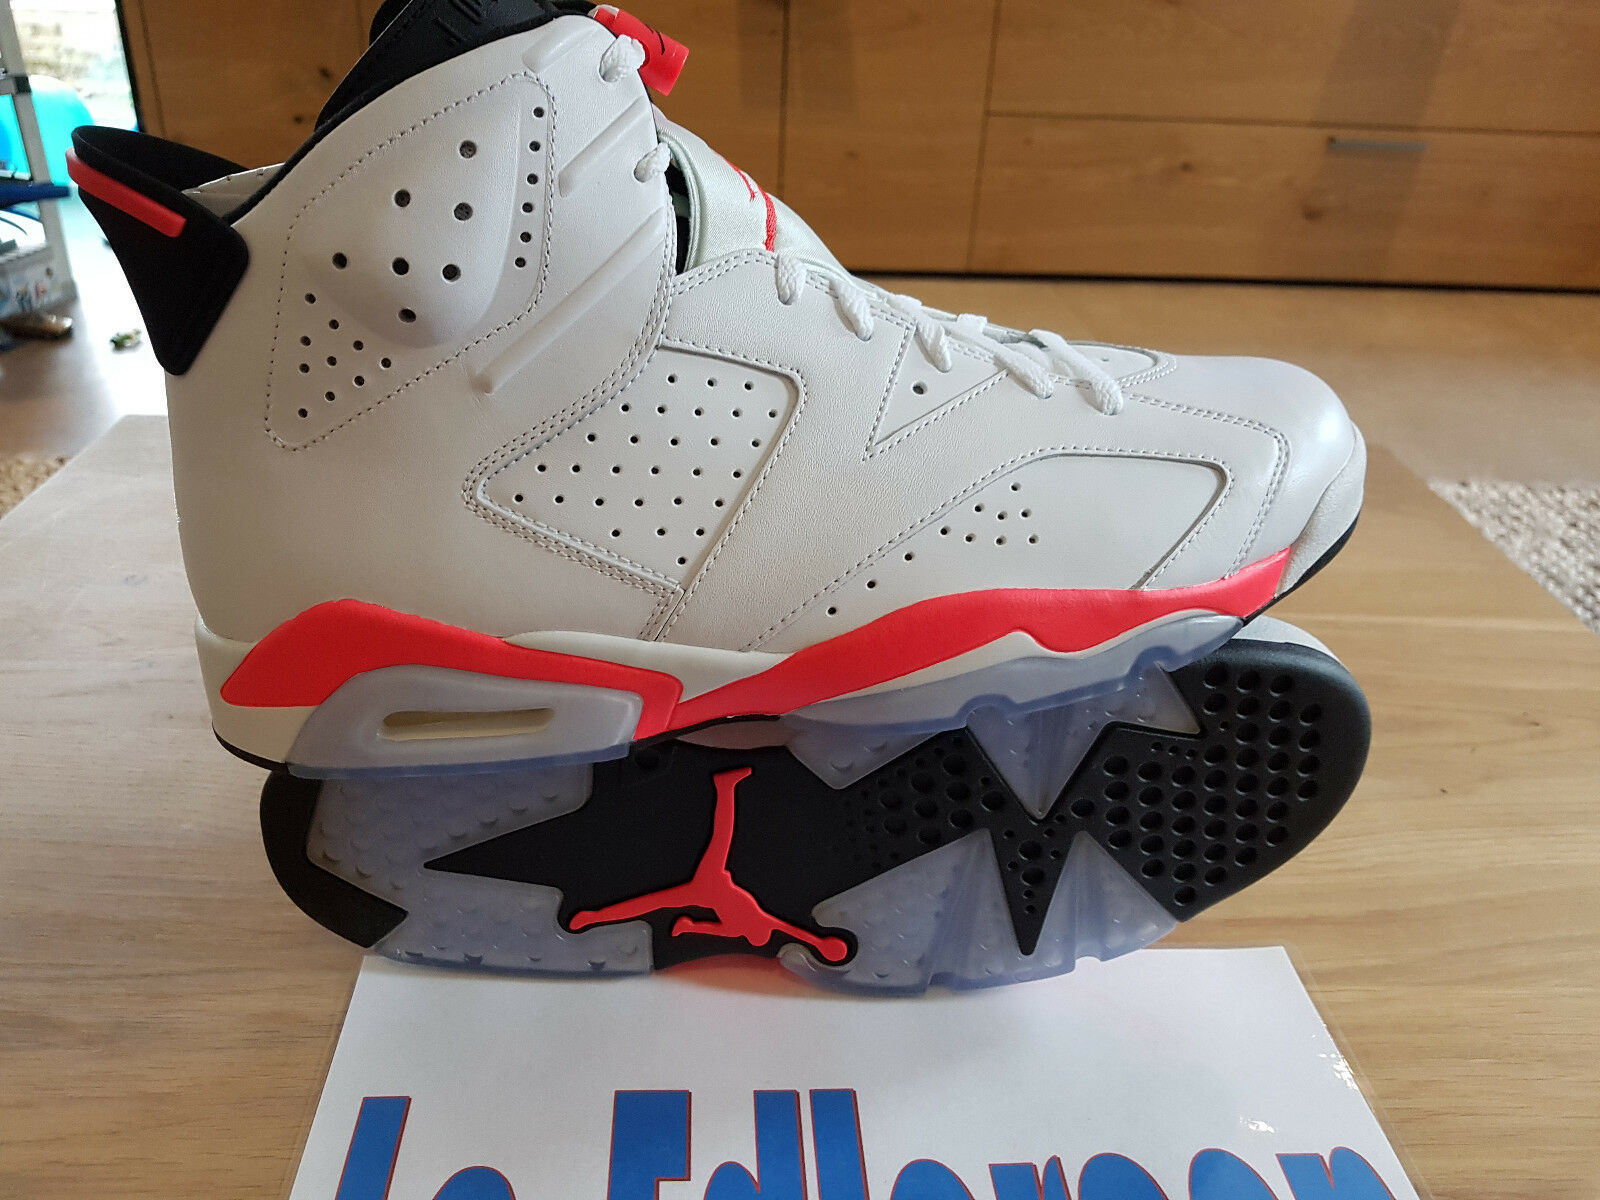 79e9846da922 NIKE Air US13 Jordan 6 VI NIB US13 Air wow c283a9 - trukountry.com